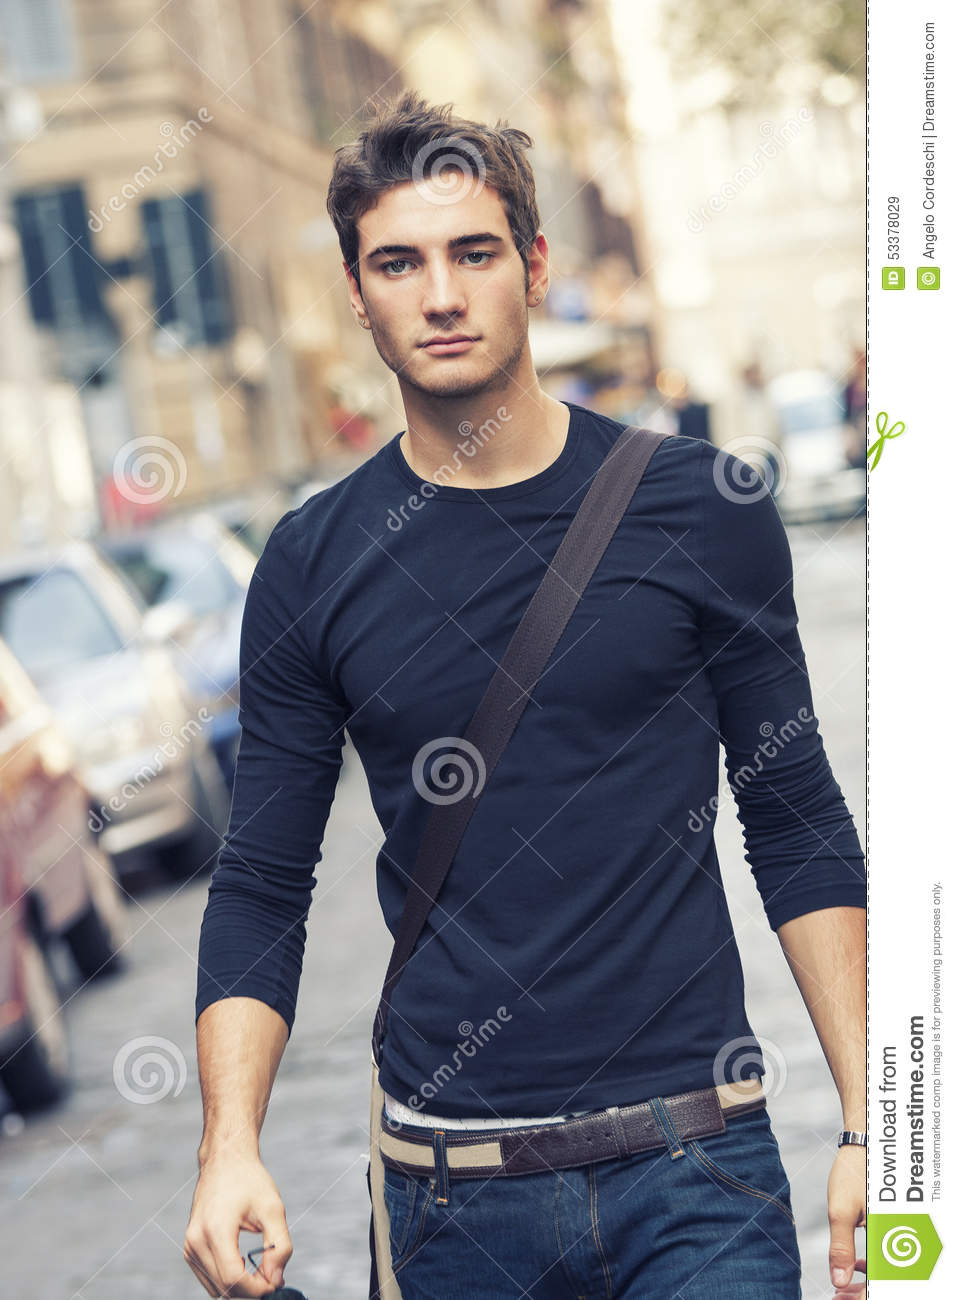 Beautiful Man Model Outdoor With Casual Outfit Stock Photo - Image 53378029